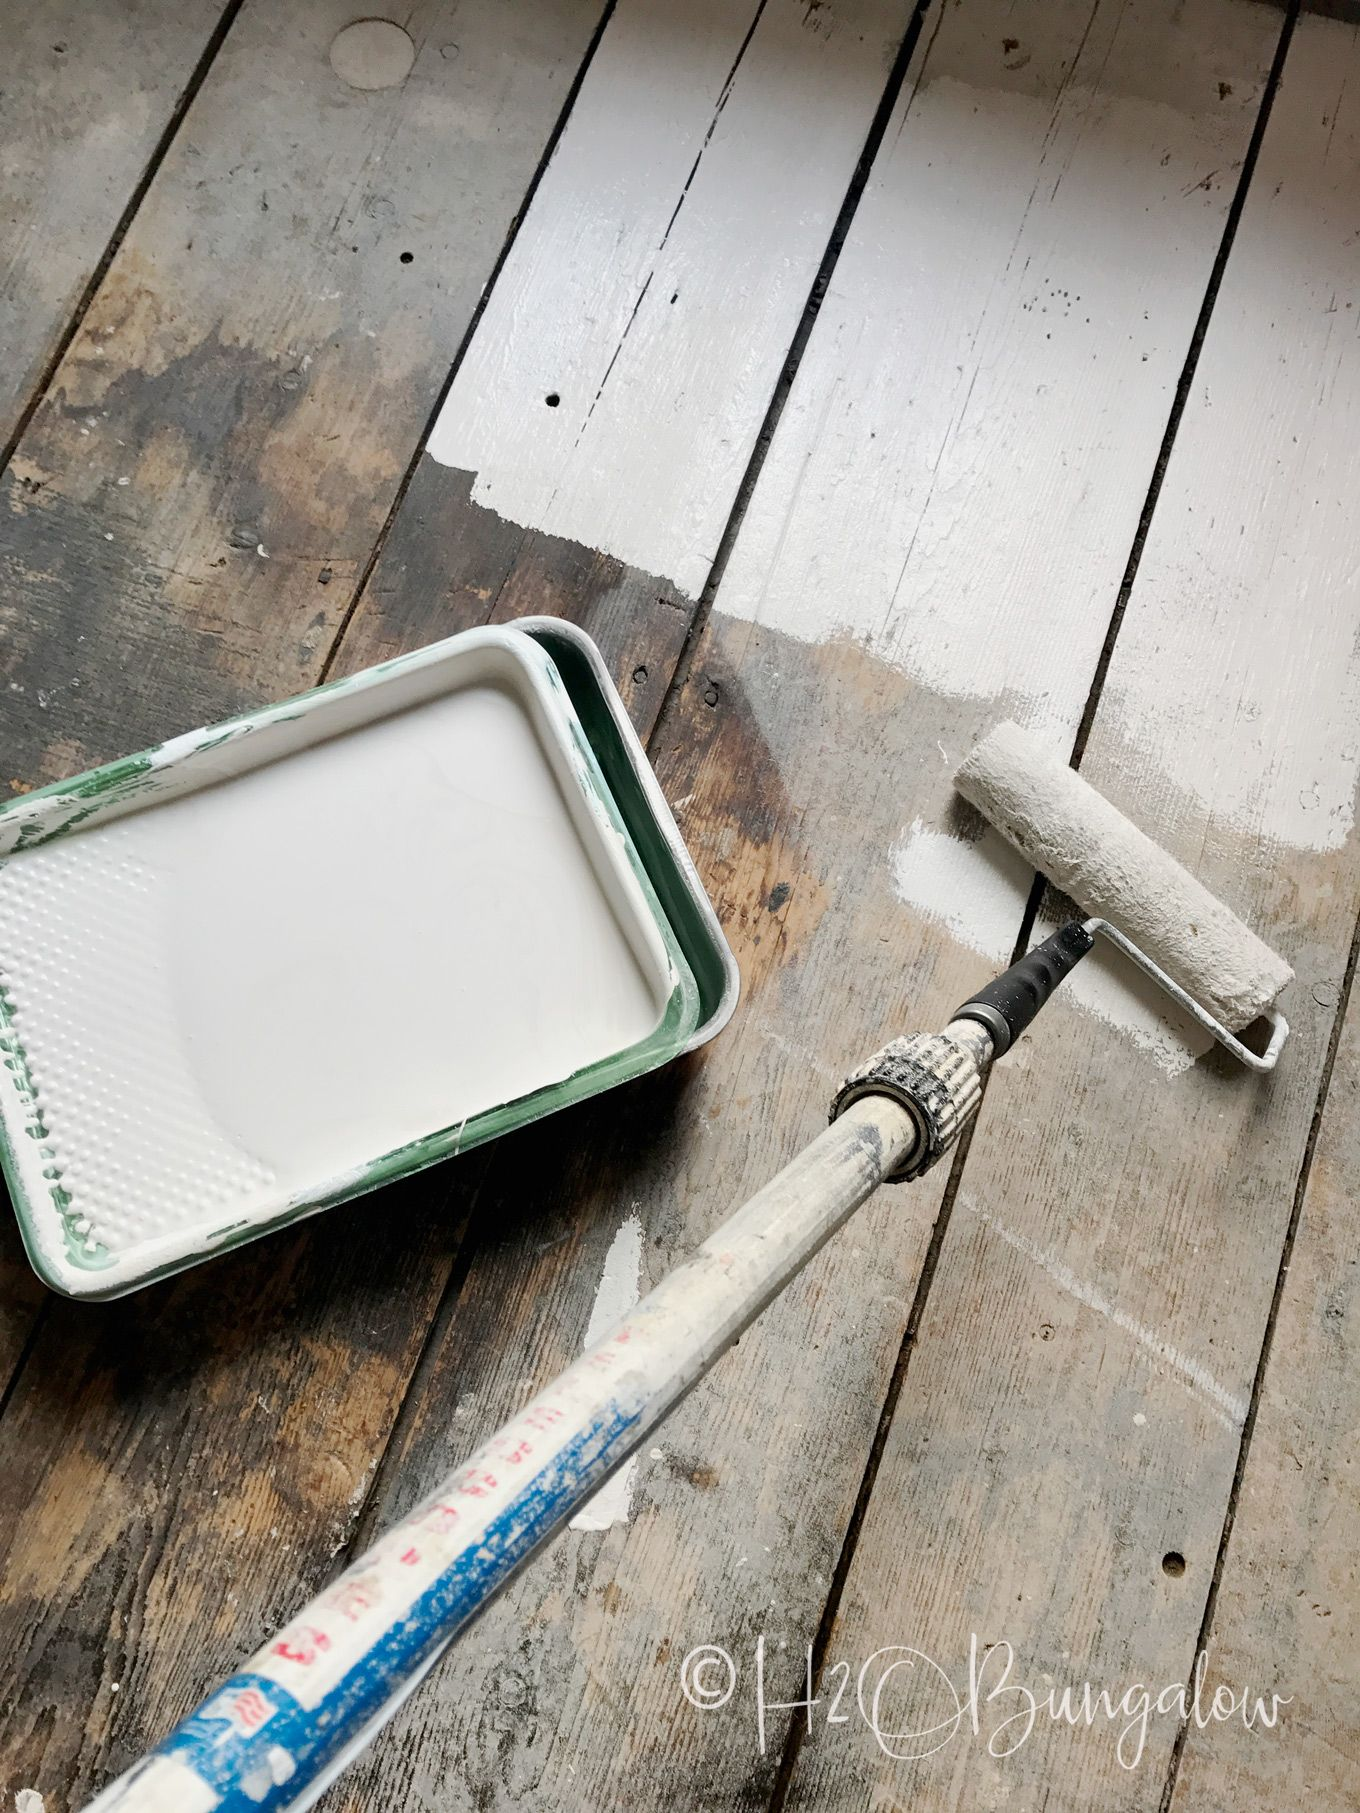 How to Paint Wood Floors Beautifully to Last is part of Painted wood floors, Painted hardwood floors, Wood floors, White wash wood floors, Kitchen flooring, Wood floor kitchen - DIY tutorial on how to paint wood floors with detailed instructions to prepare wood floors for painting, wood floor painting tips and best products to use